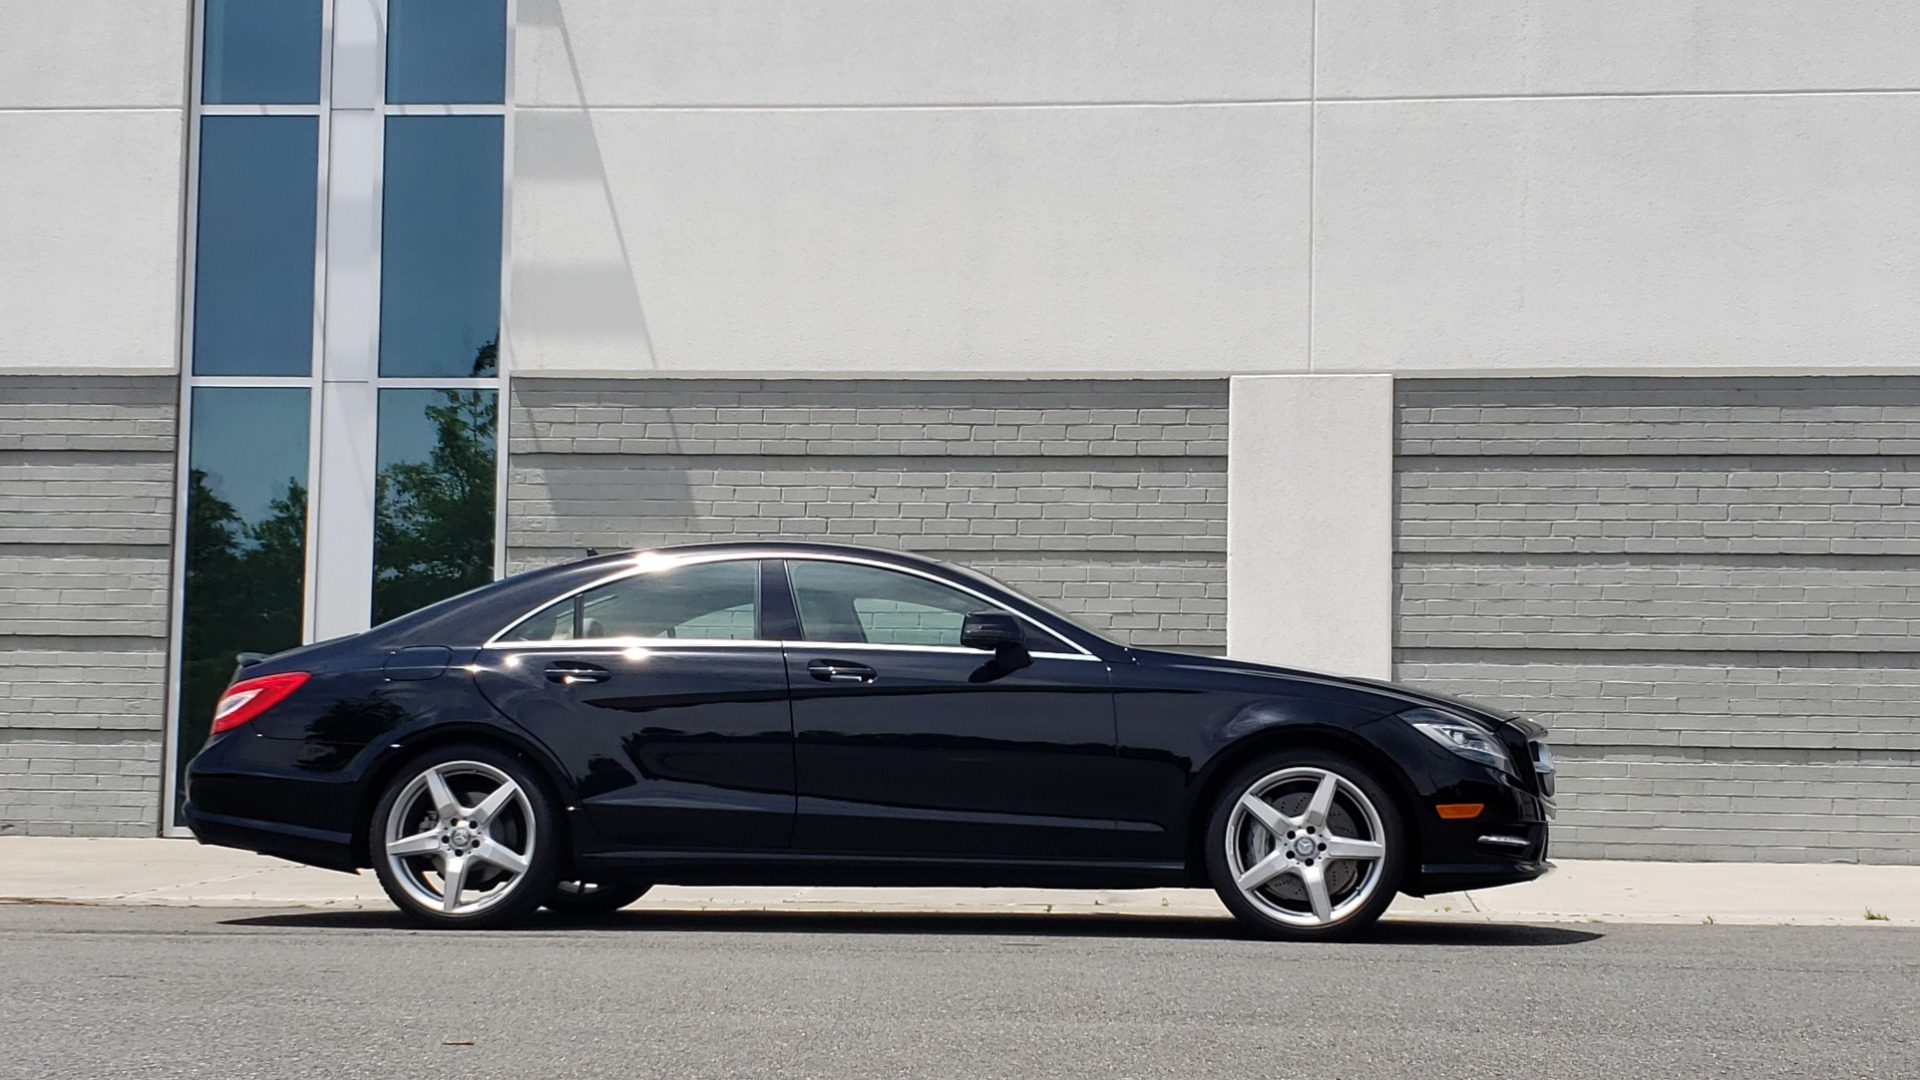 Used 2014 Mercedes-Benz CLS-CLASS CLS 550 PREMIUM / AMG SPORT WHLS / SUNROOF / LANE TRACK / PARKTRONIC for sale Sold at Formula Imports in Charlotte NC 28227 8